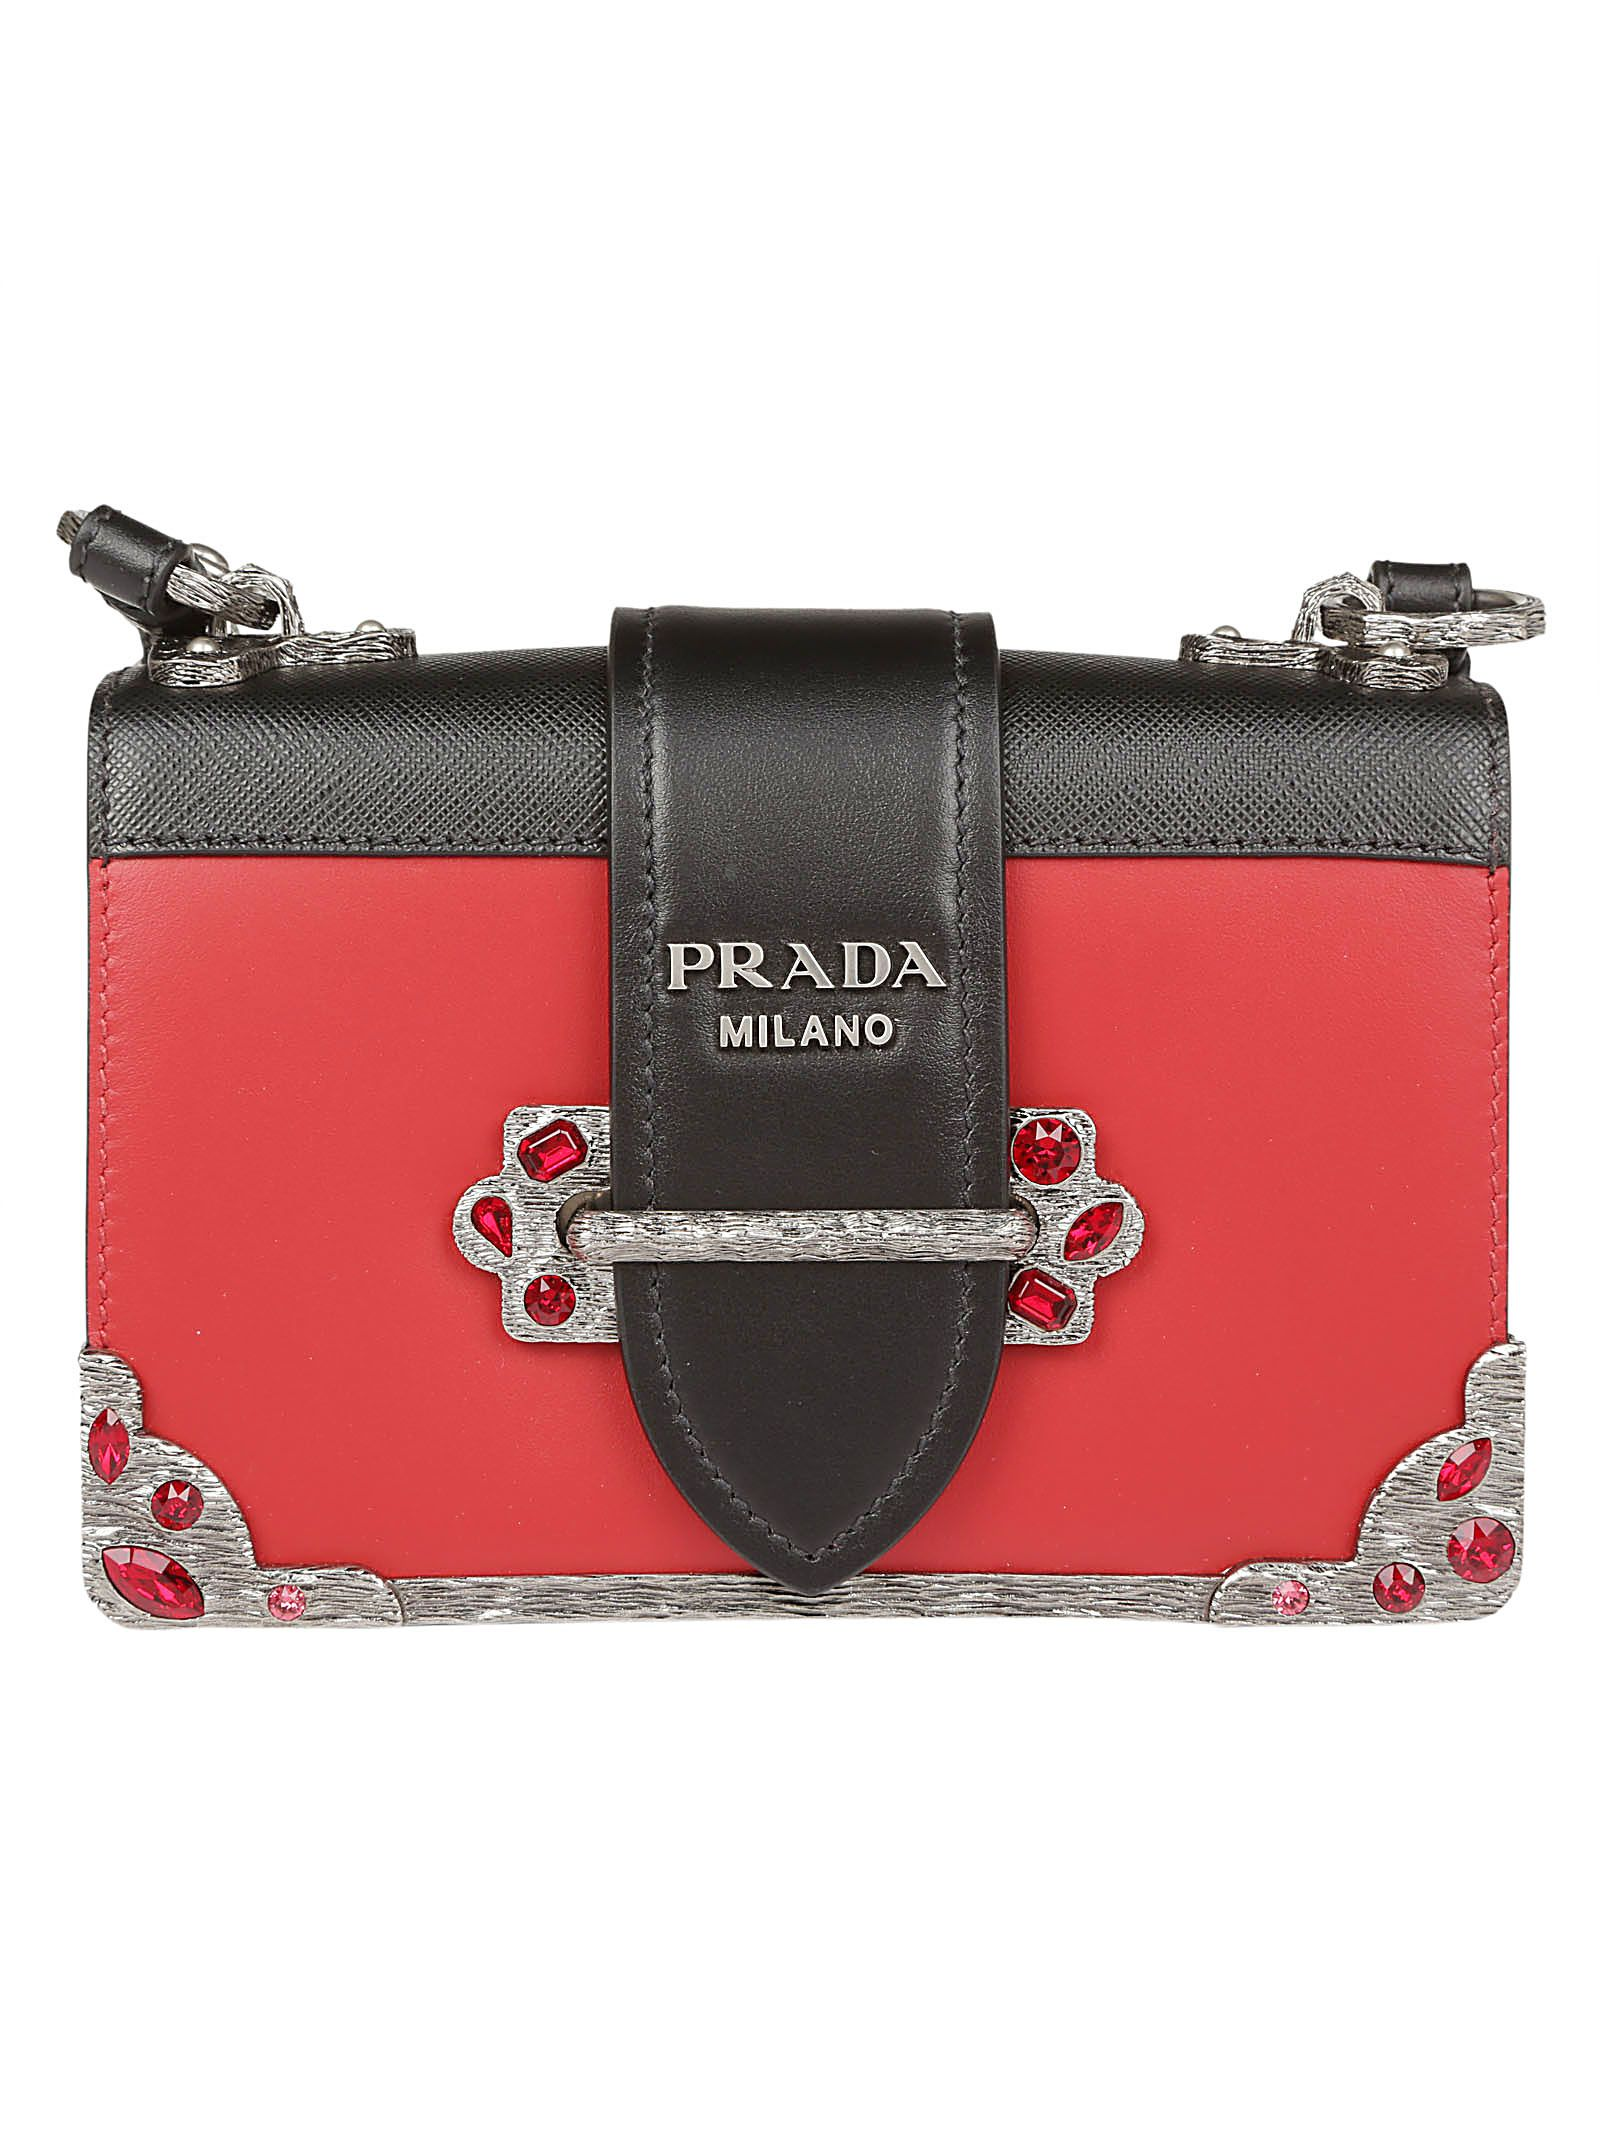 73014663bc94 ... coupon code prada bandoliera shoulder bag in fuoco nero 47de7 d240c